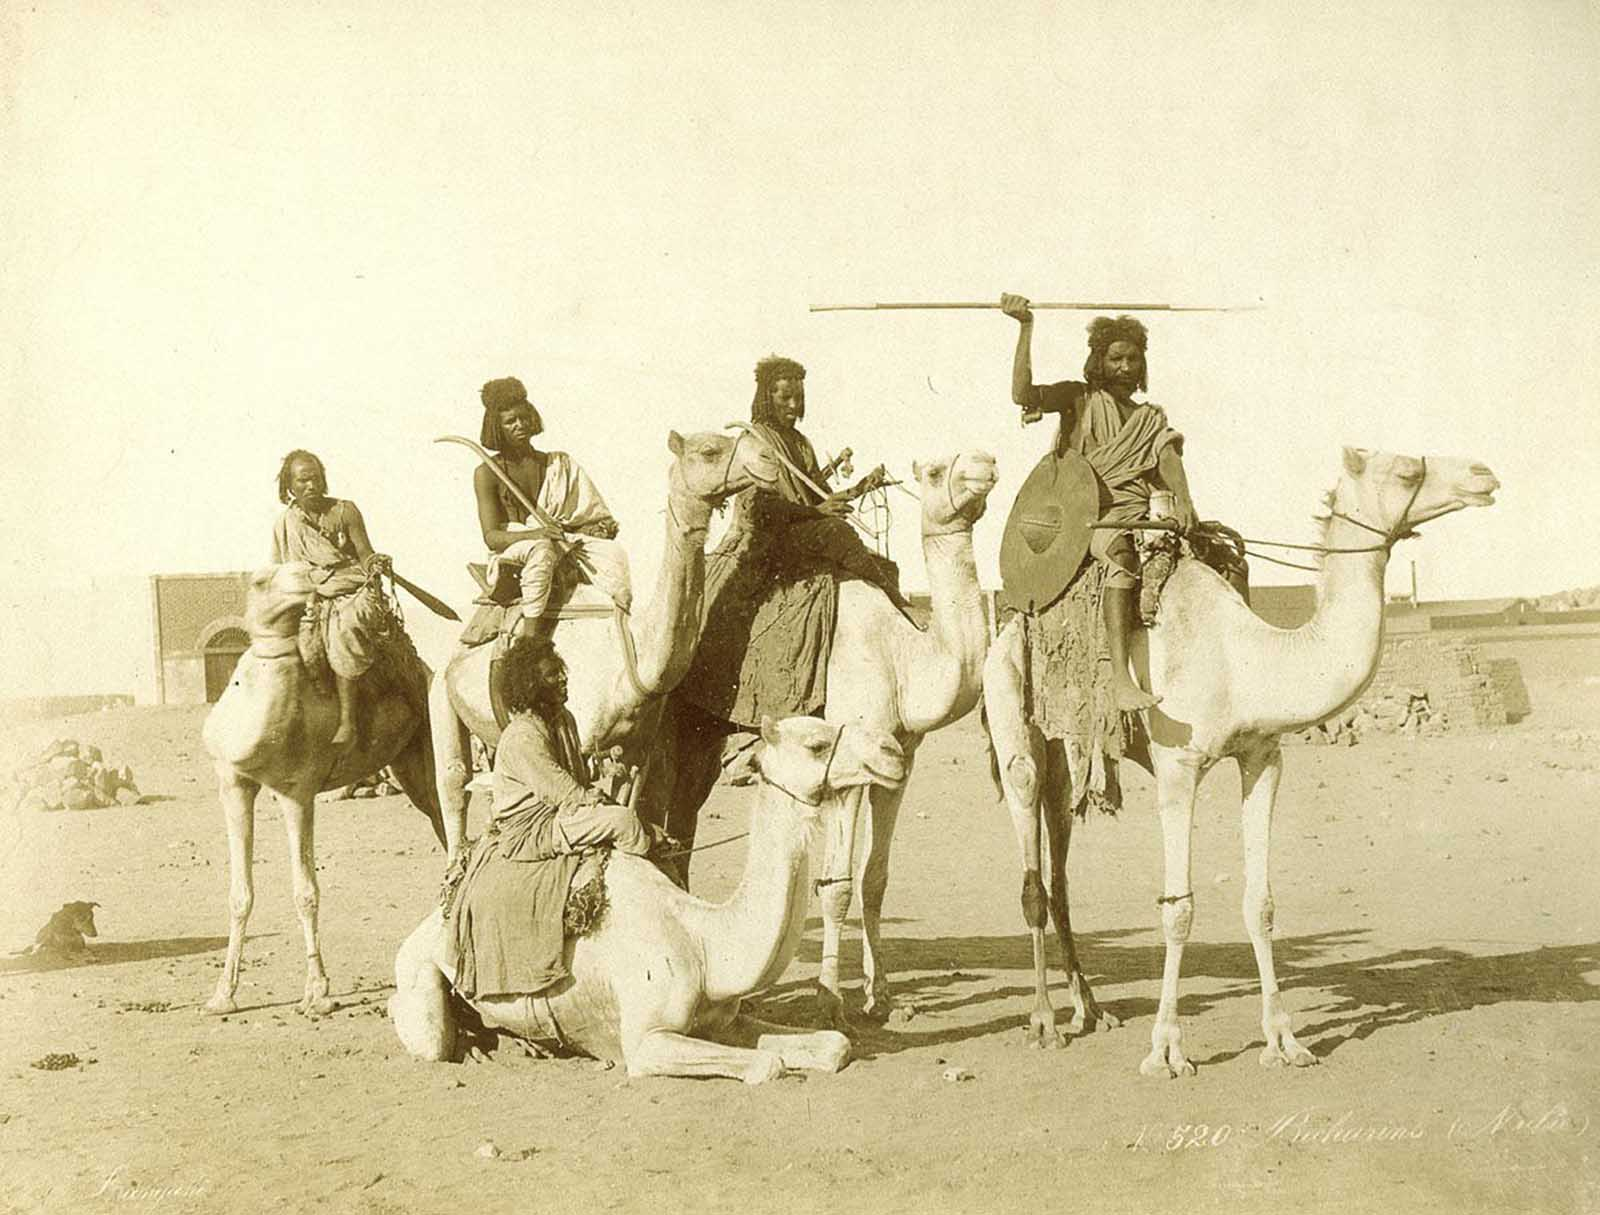 Bicharin men on camels.